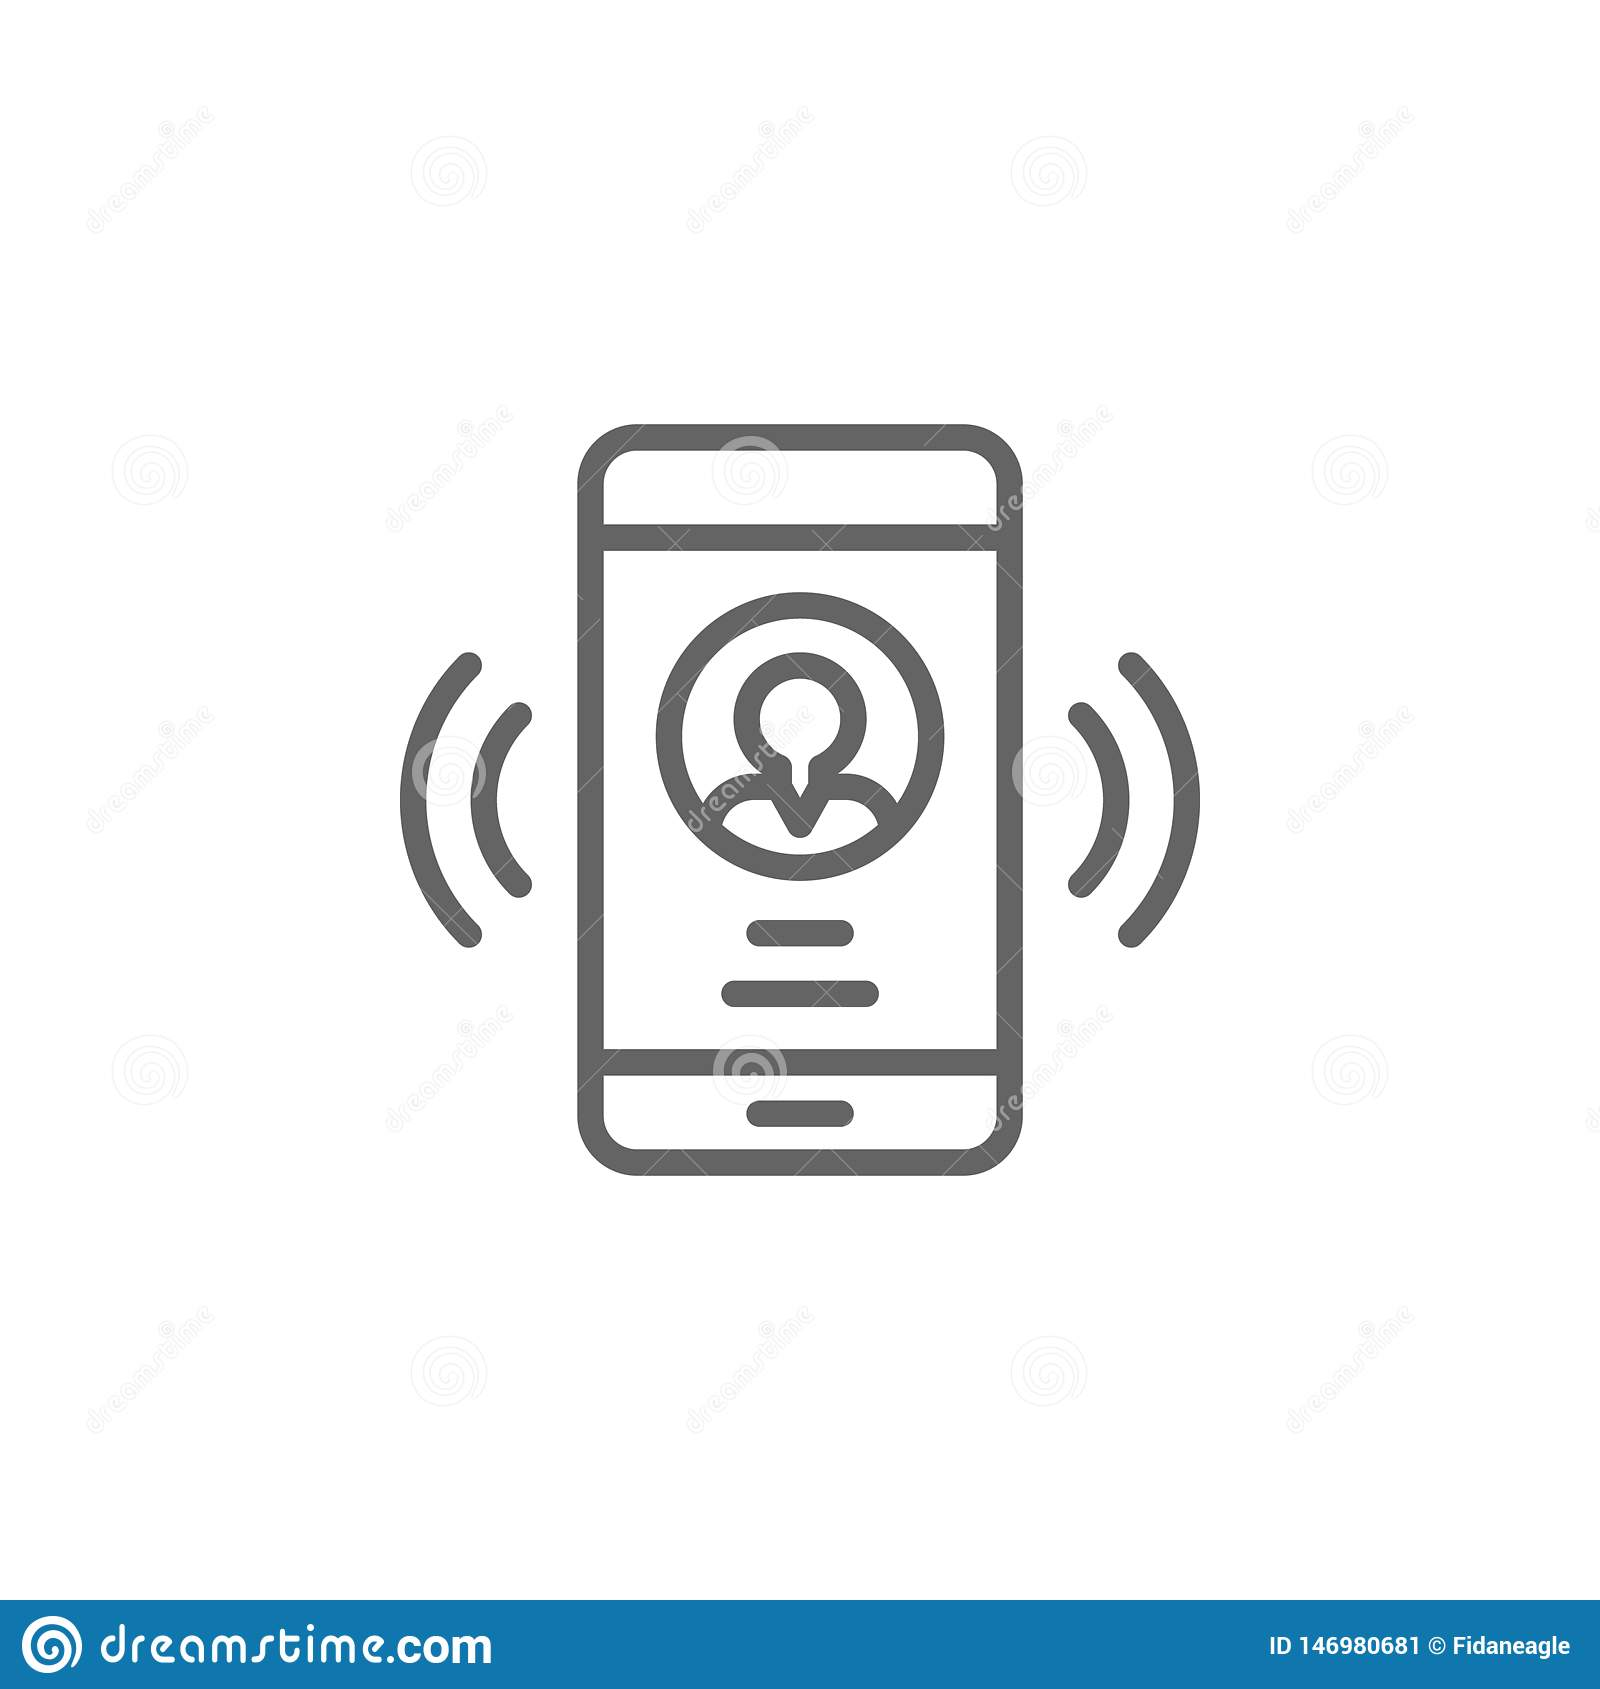 Smartphone call man outline icon. Elements of Business illustration line icon. Signs and symbols can be used for web, logo, mobile